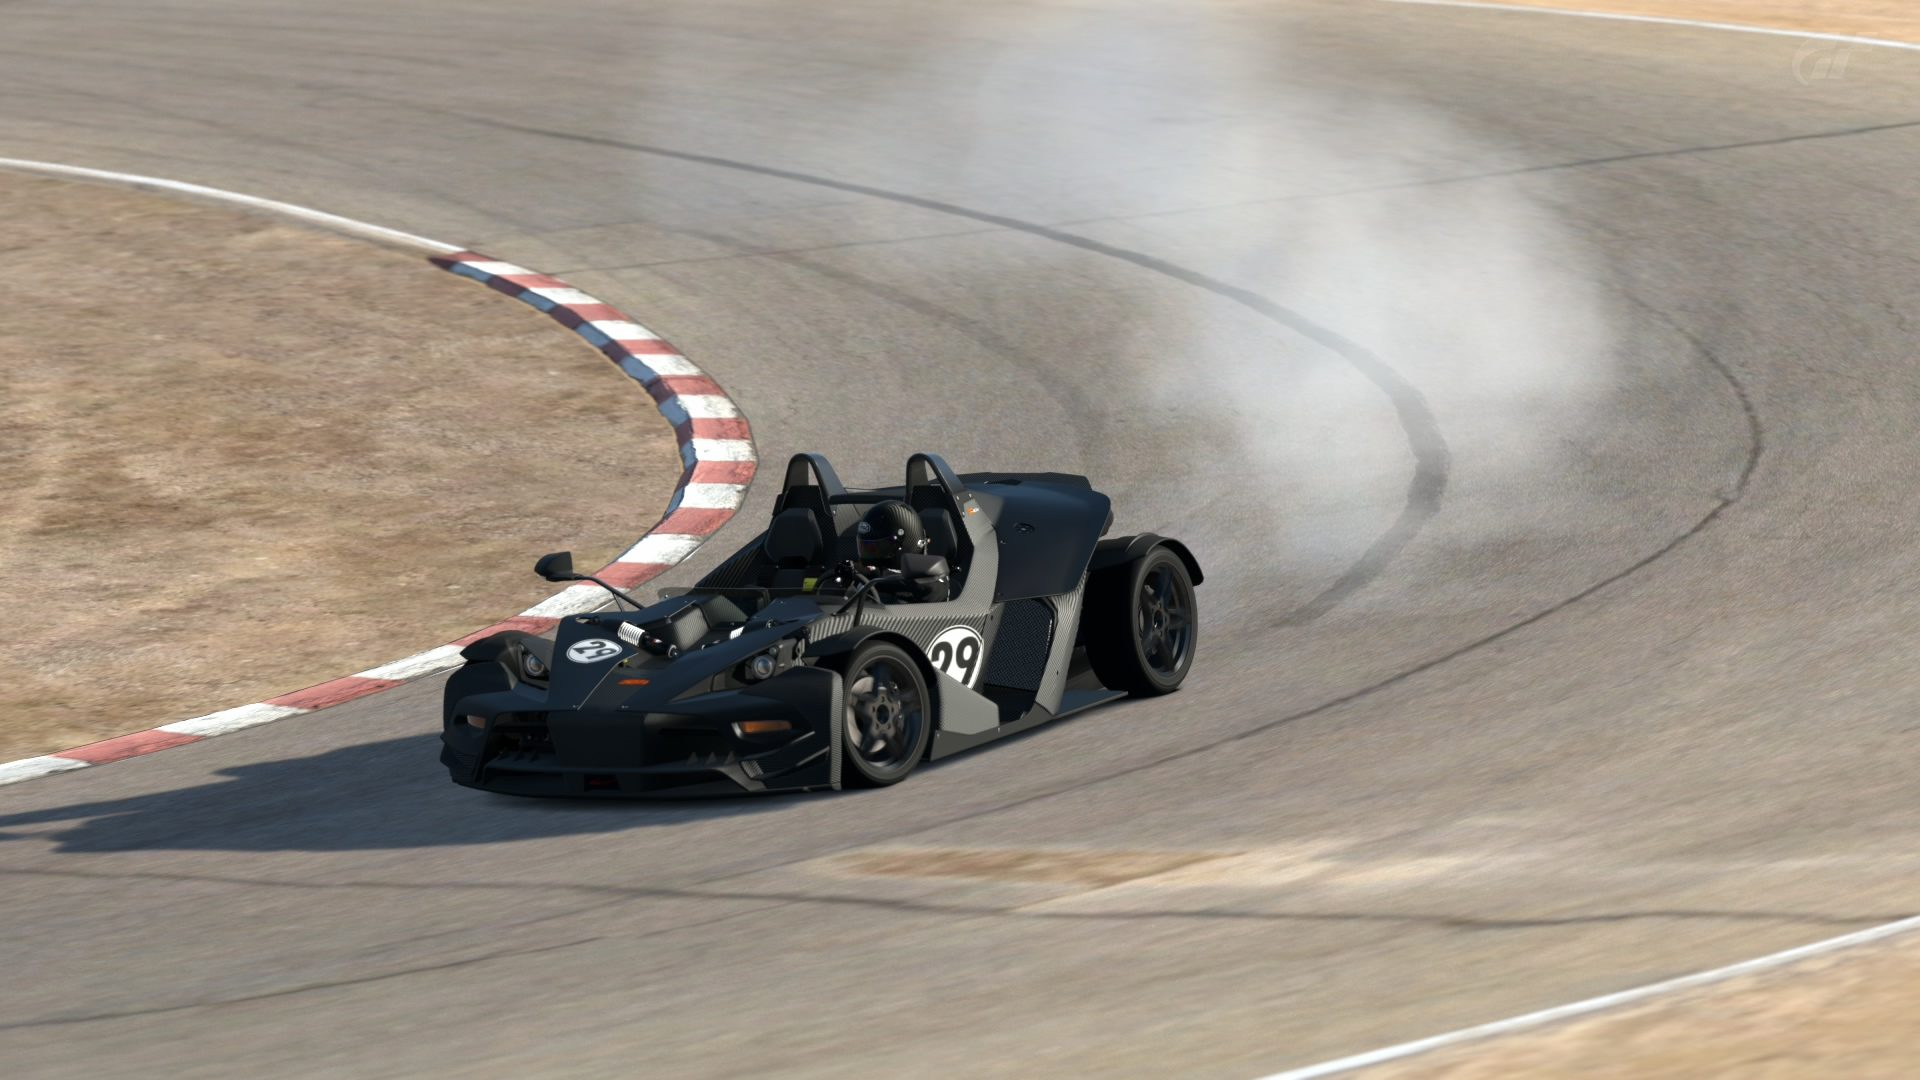 Willow Springs International Raceway_ Streets of Willow Springs.jpg